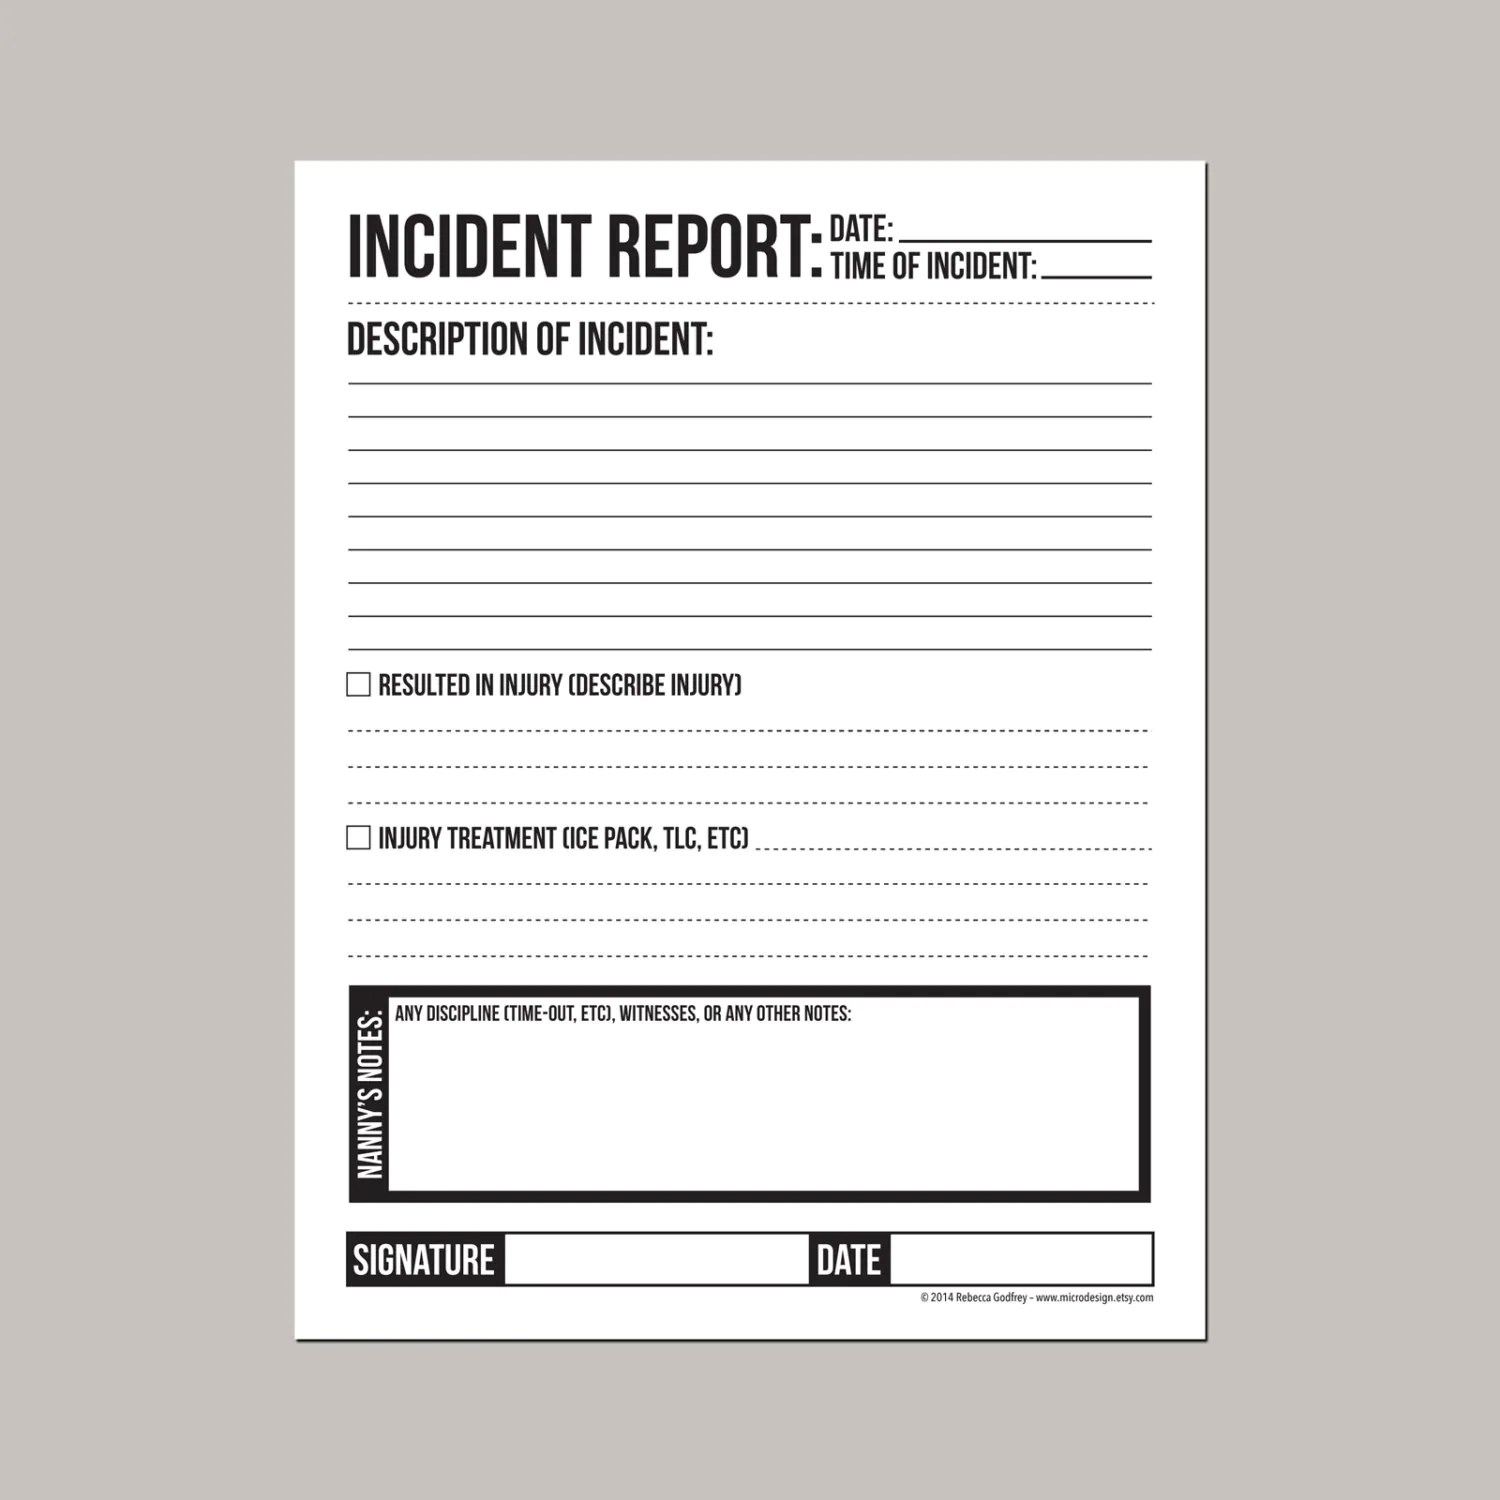 Incident Report For Nanny Or Daycare Worker